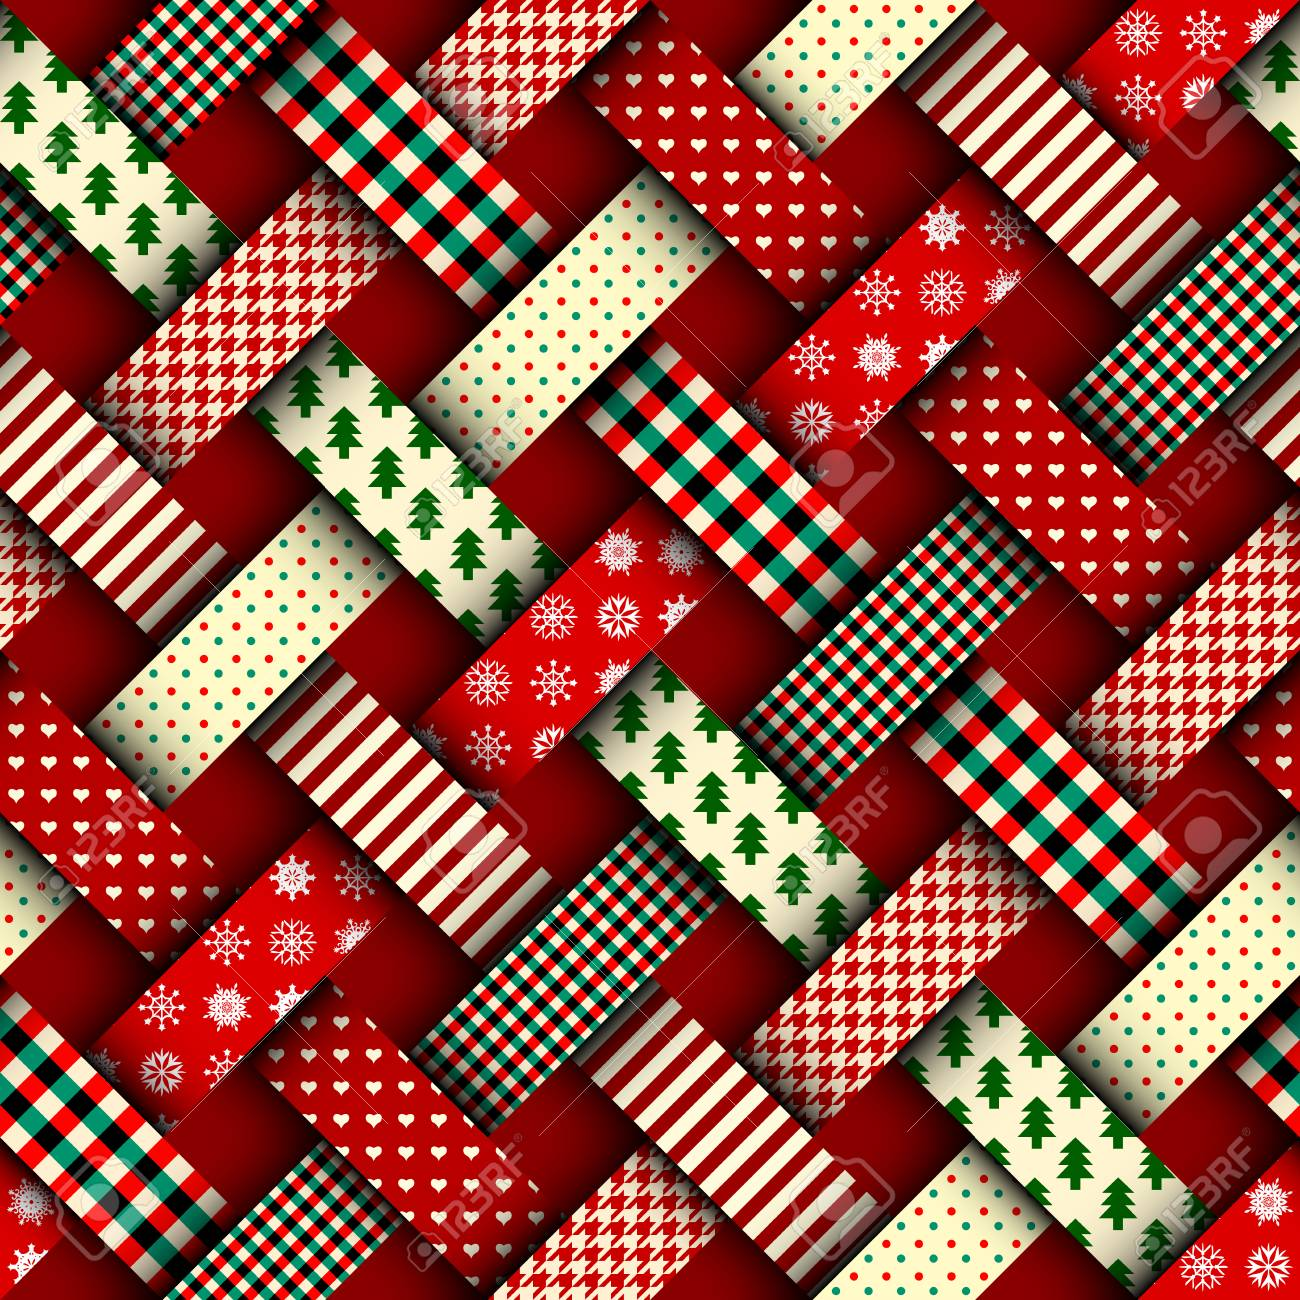 Seamless Christmas background in patchwork style. Interweaving ribbons with Christmas patterns on red background. - 88482866